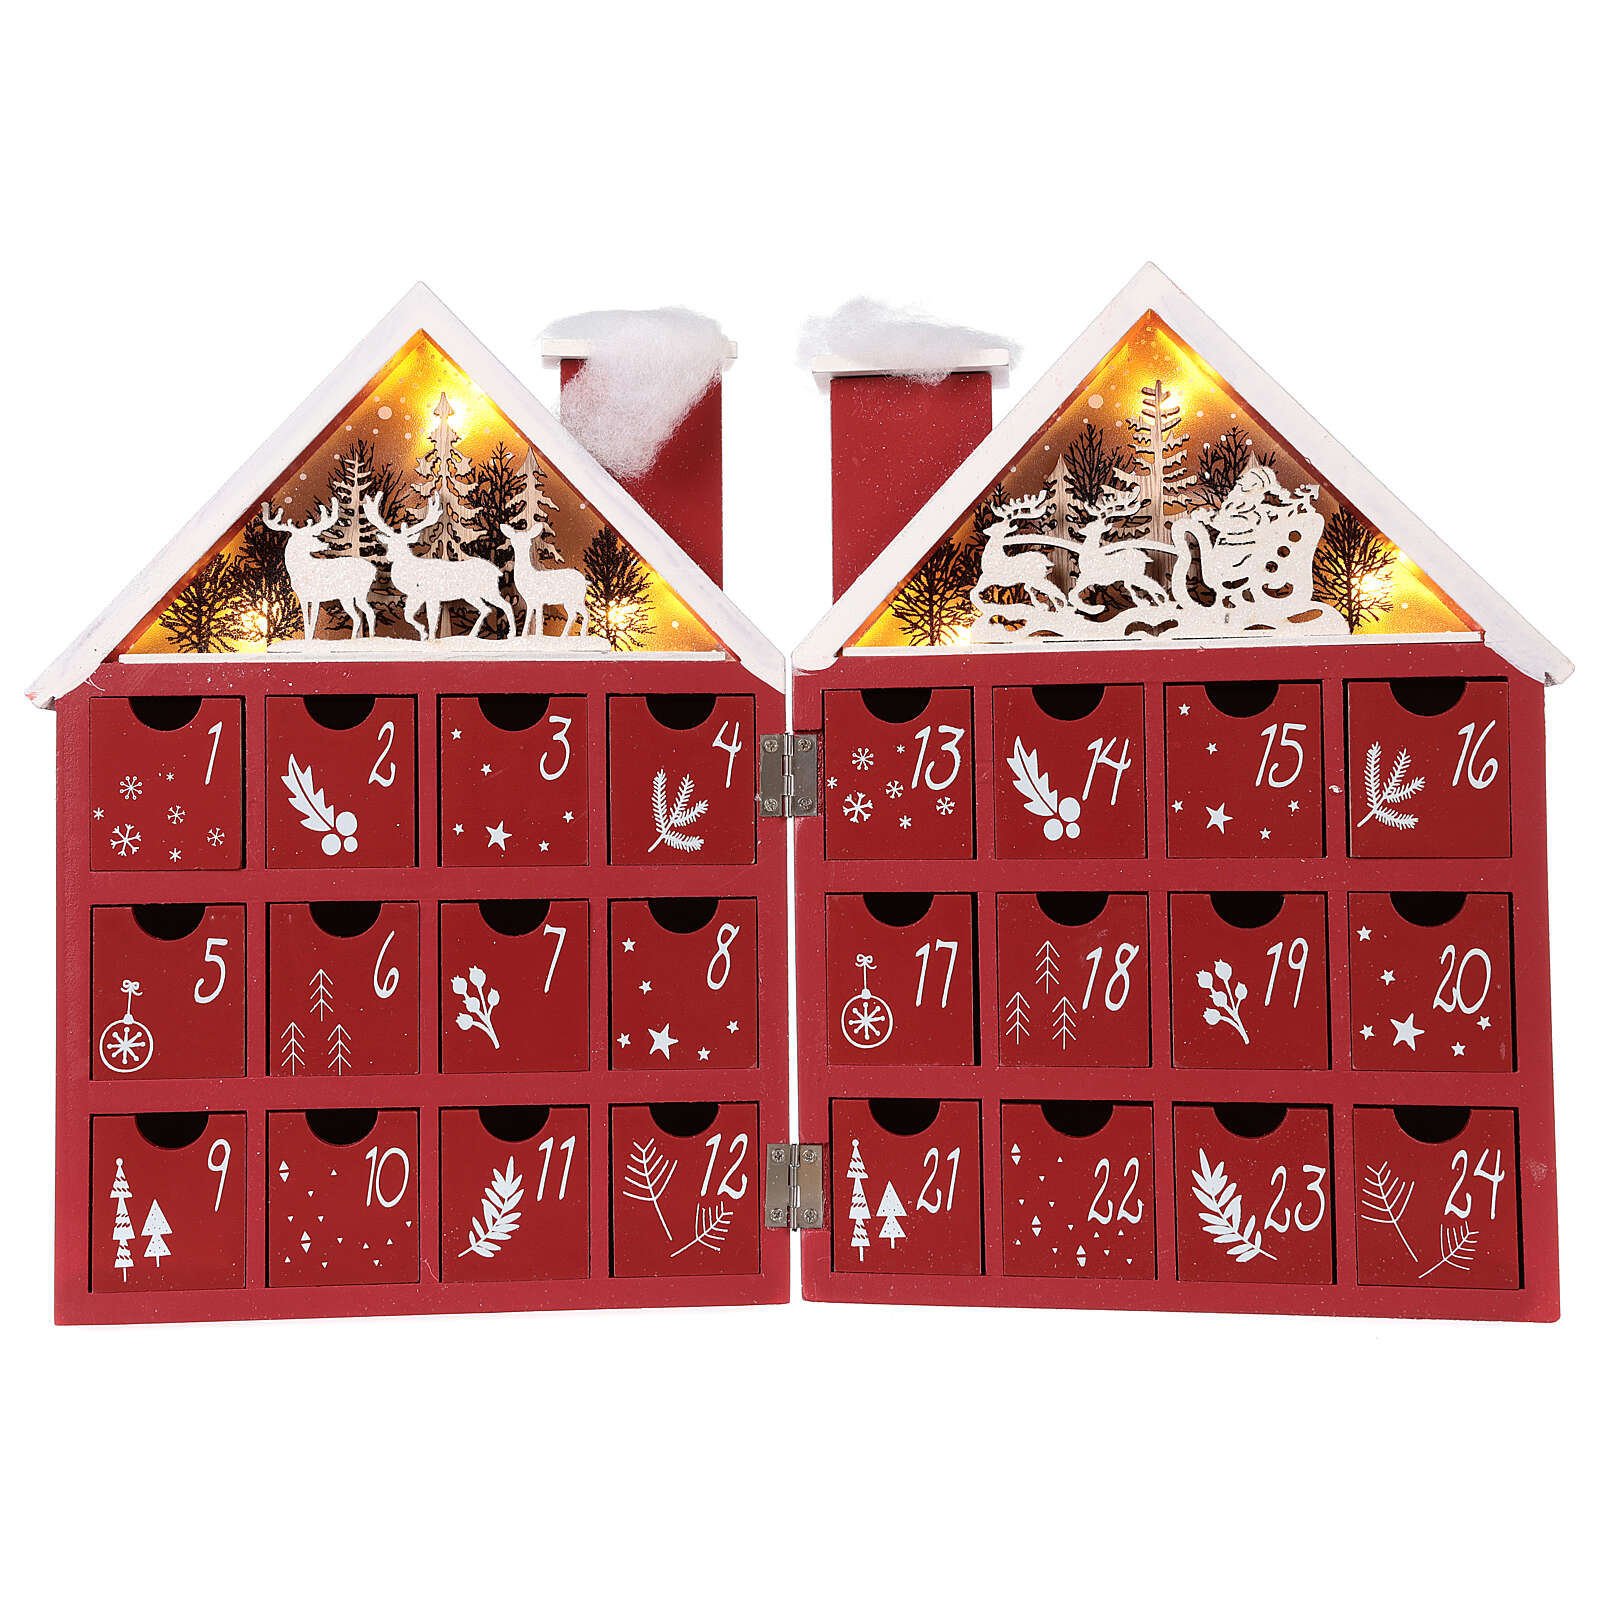 Advent Calendar in wood with boxes with lights 30x40x5 cm 3